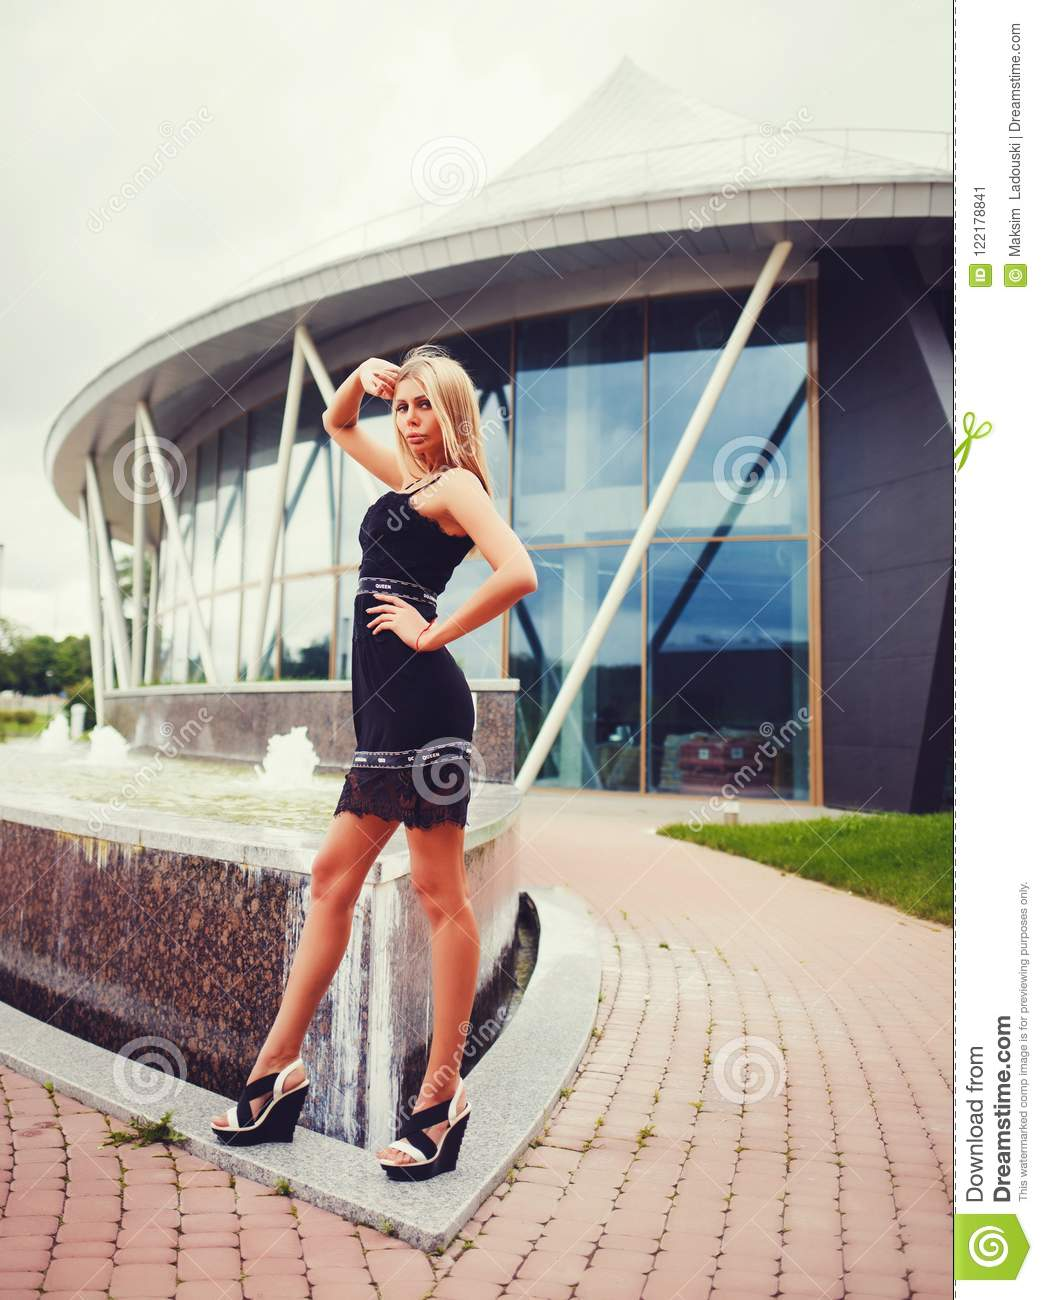 Stylish girl with long legs posing at summer city